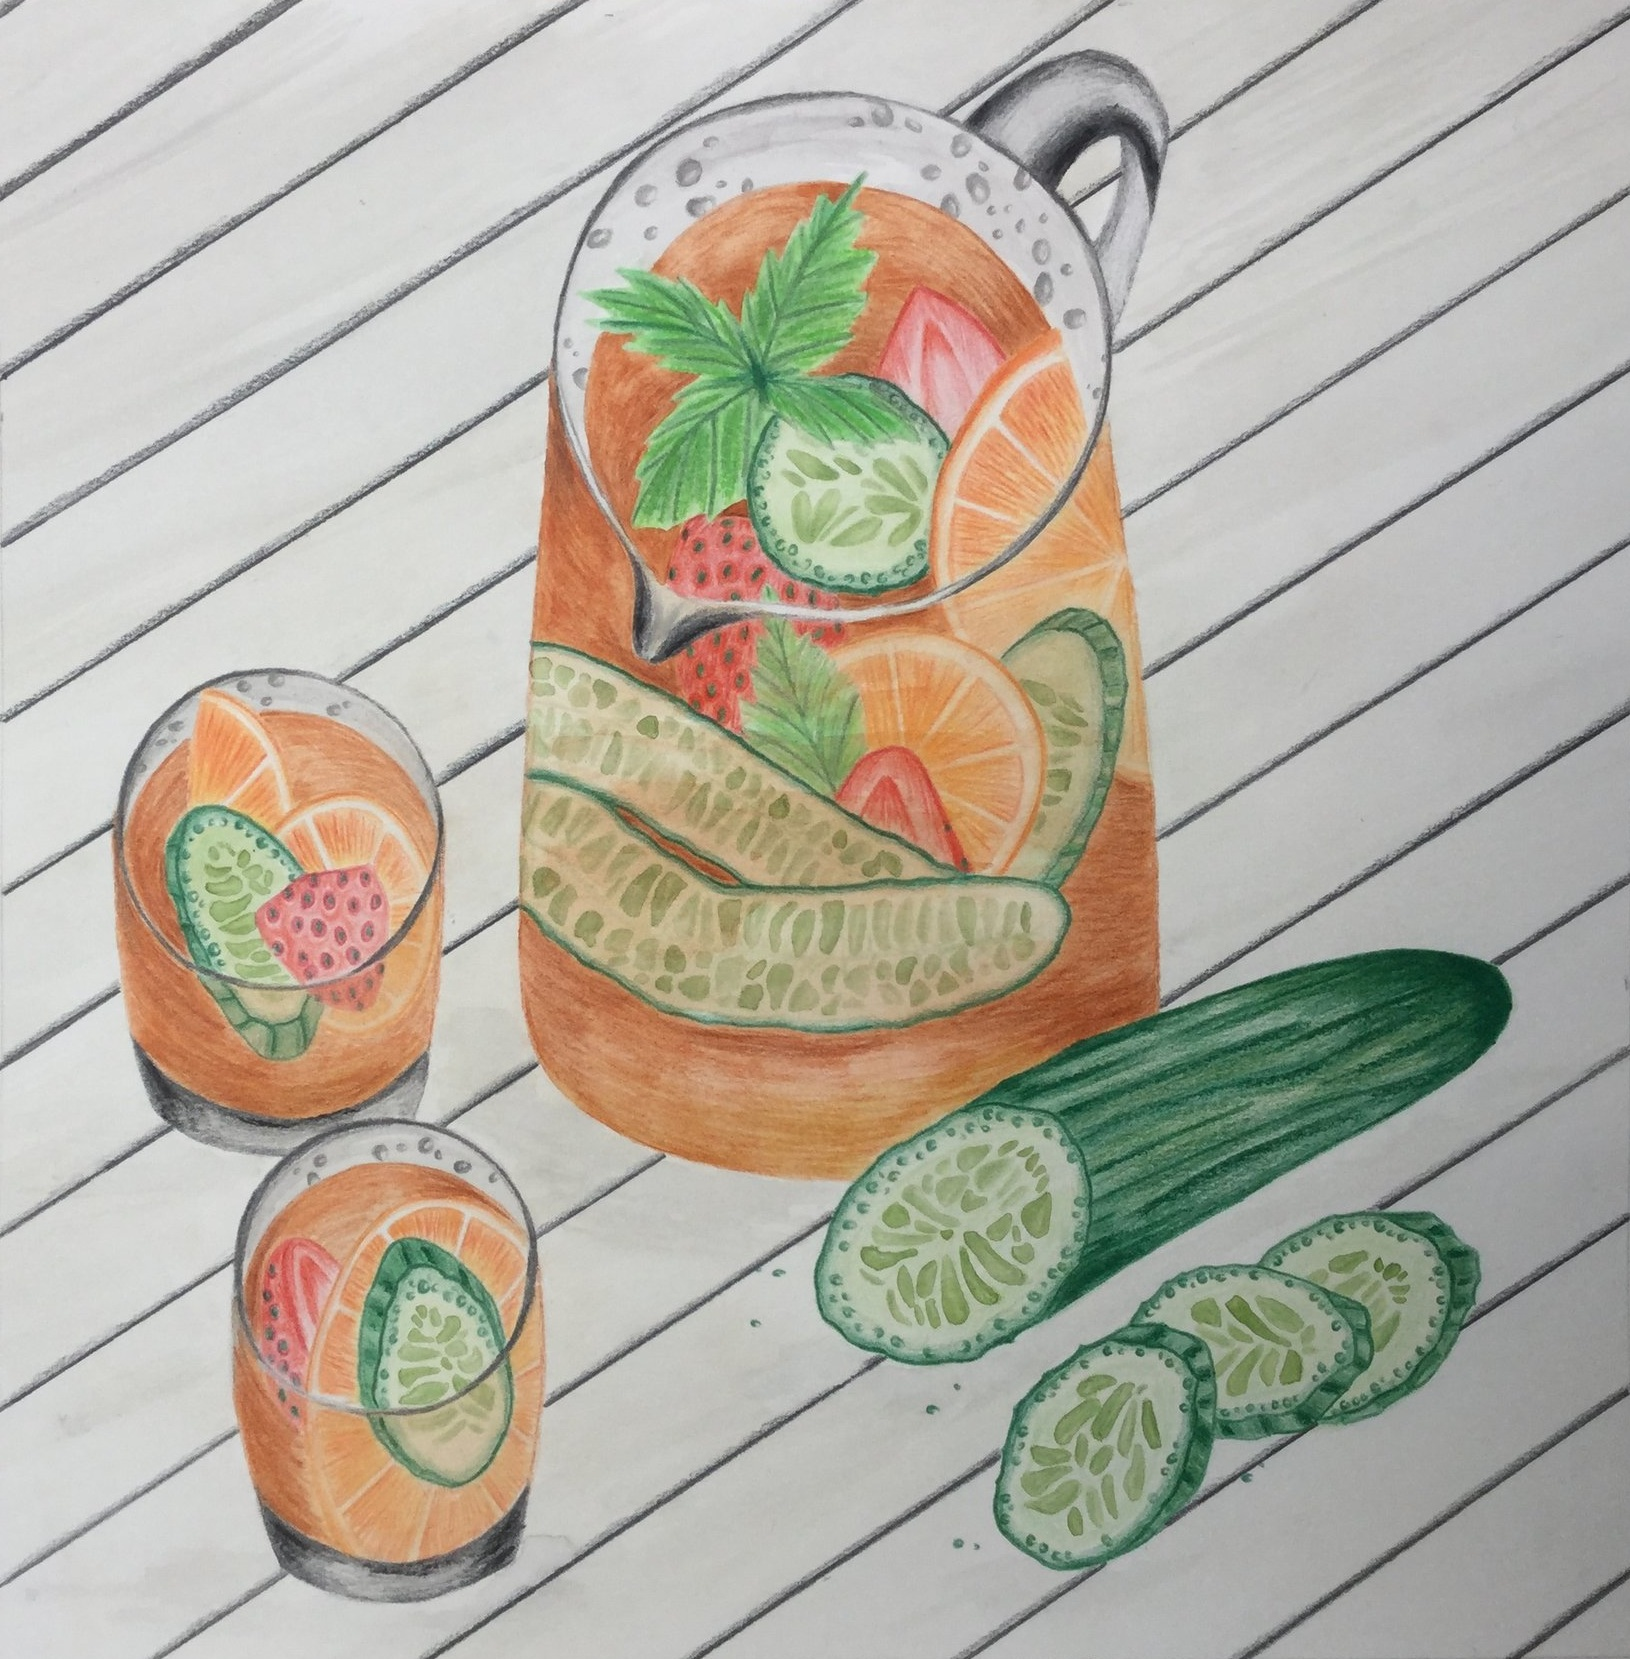 Copy of Jug of Pimms illustration by Briony Dixon